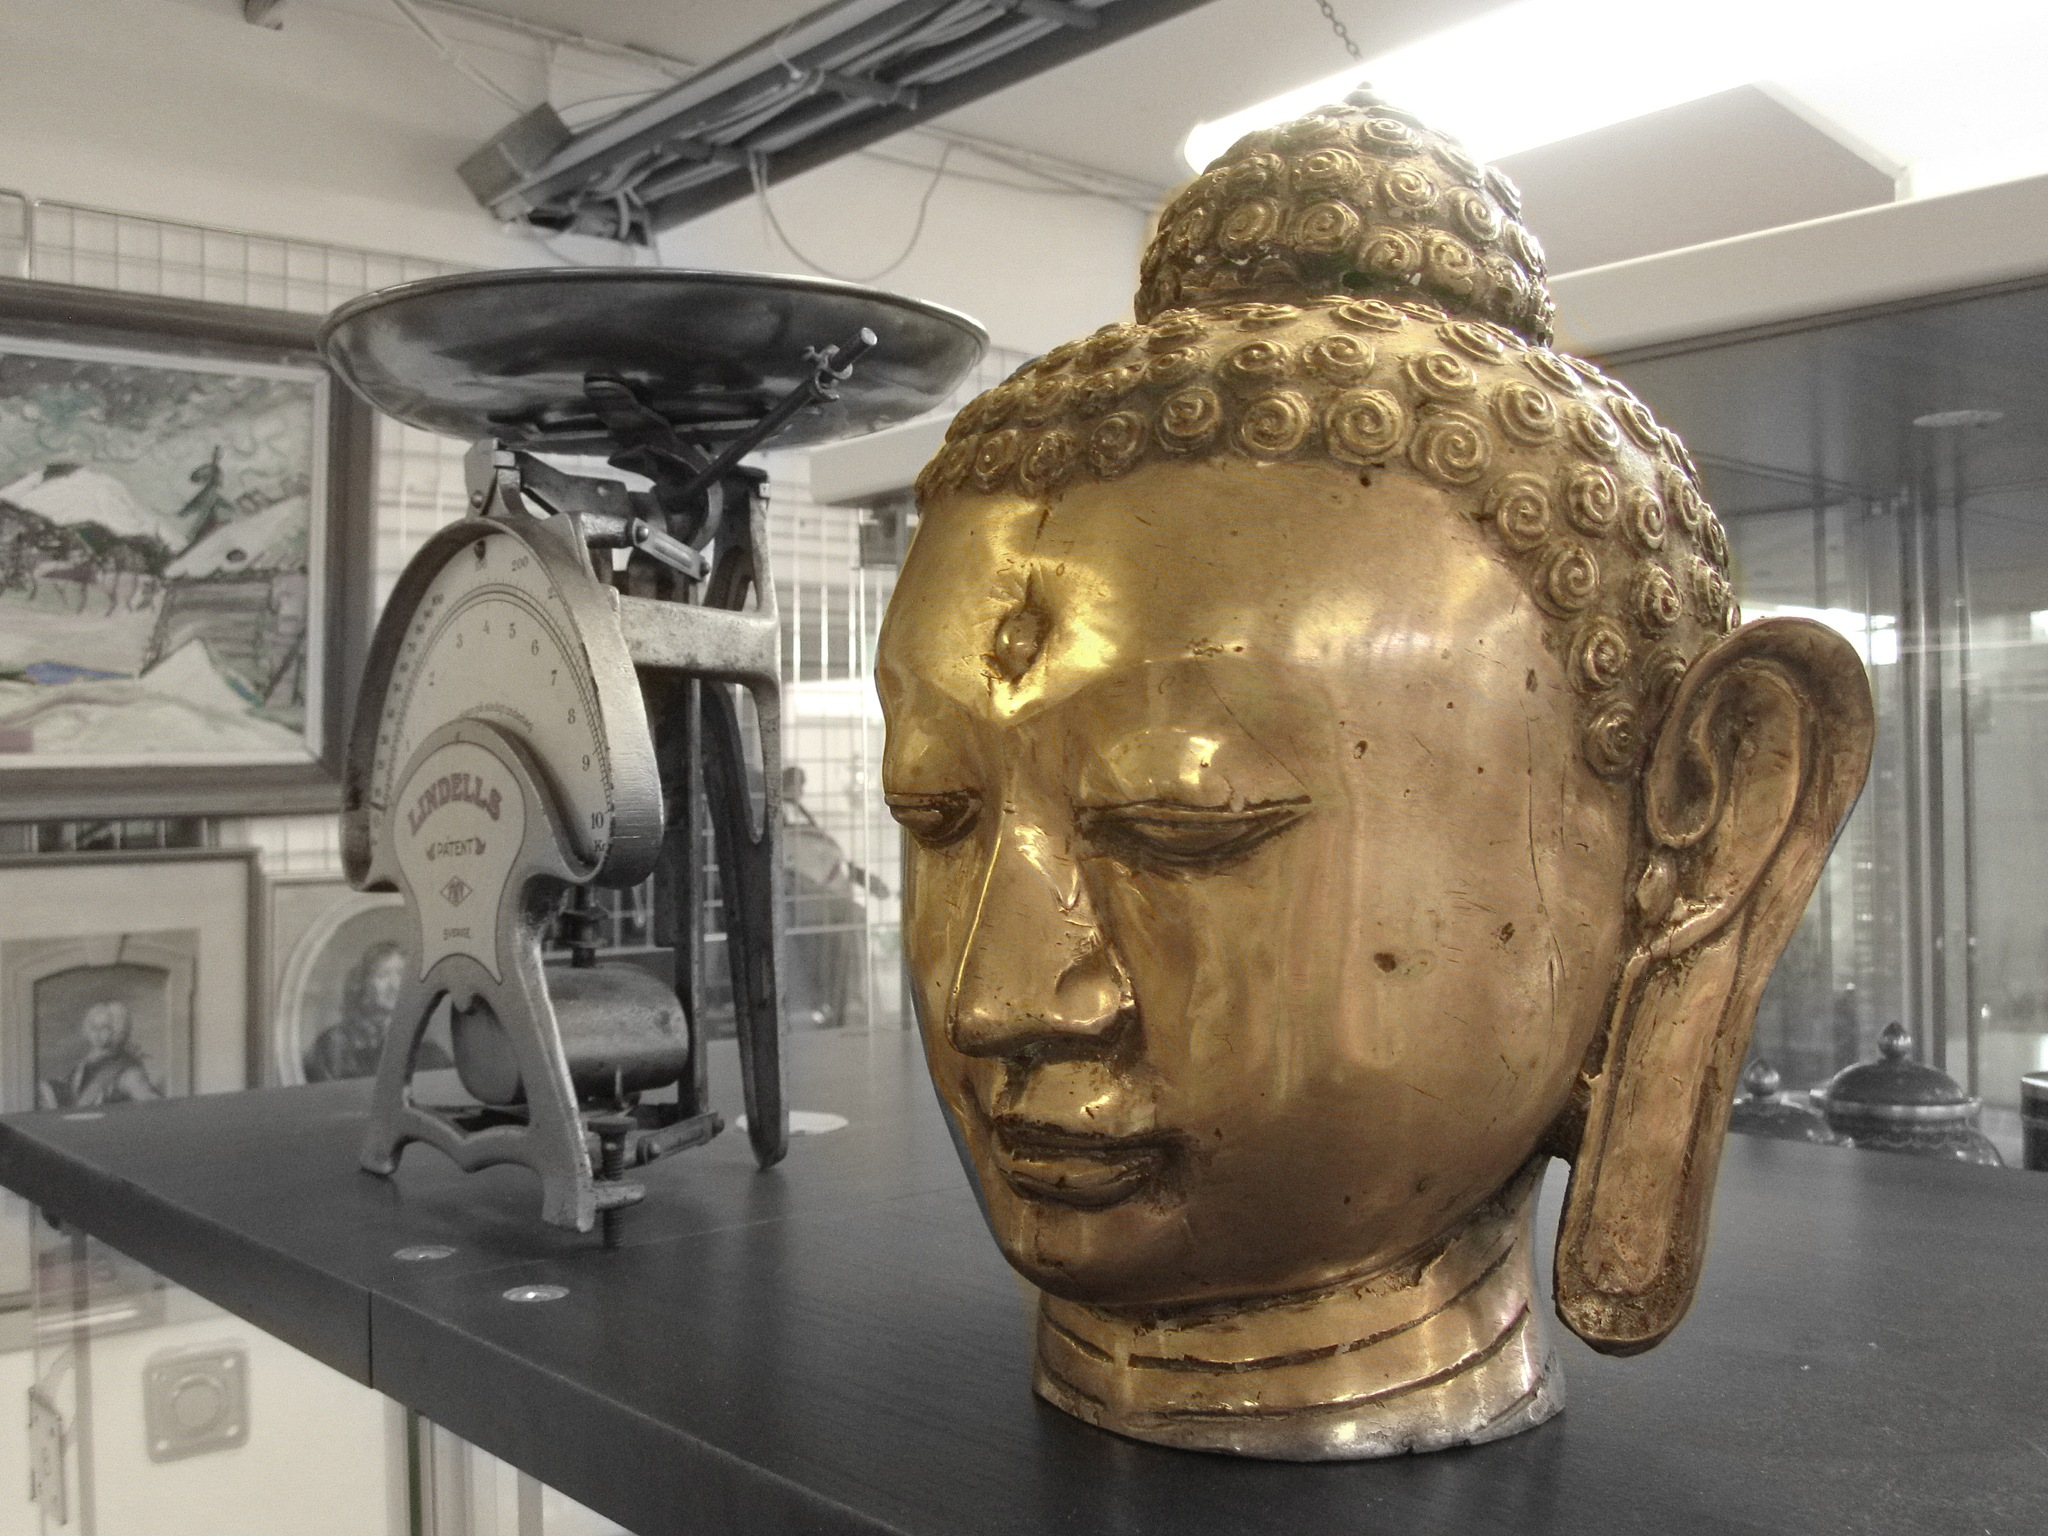 The Buddha in Gold and w. grey bgr. by Mikael Rennerhorn